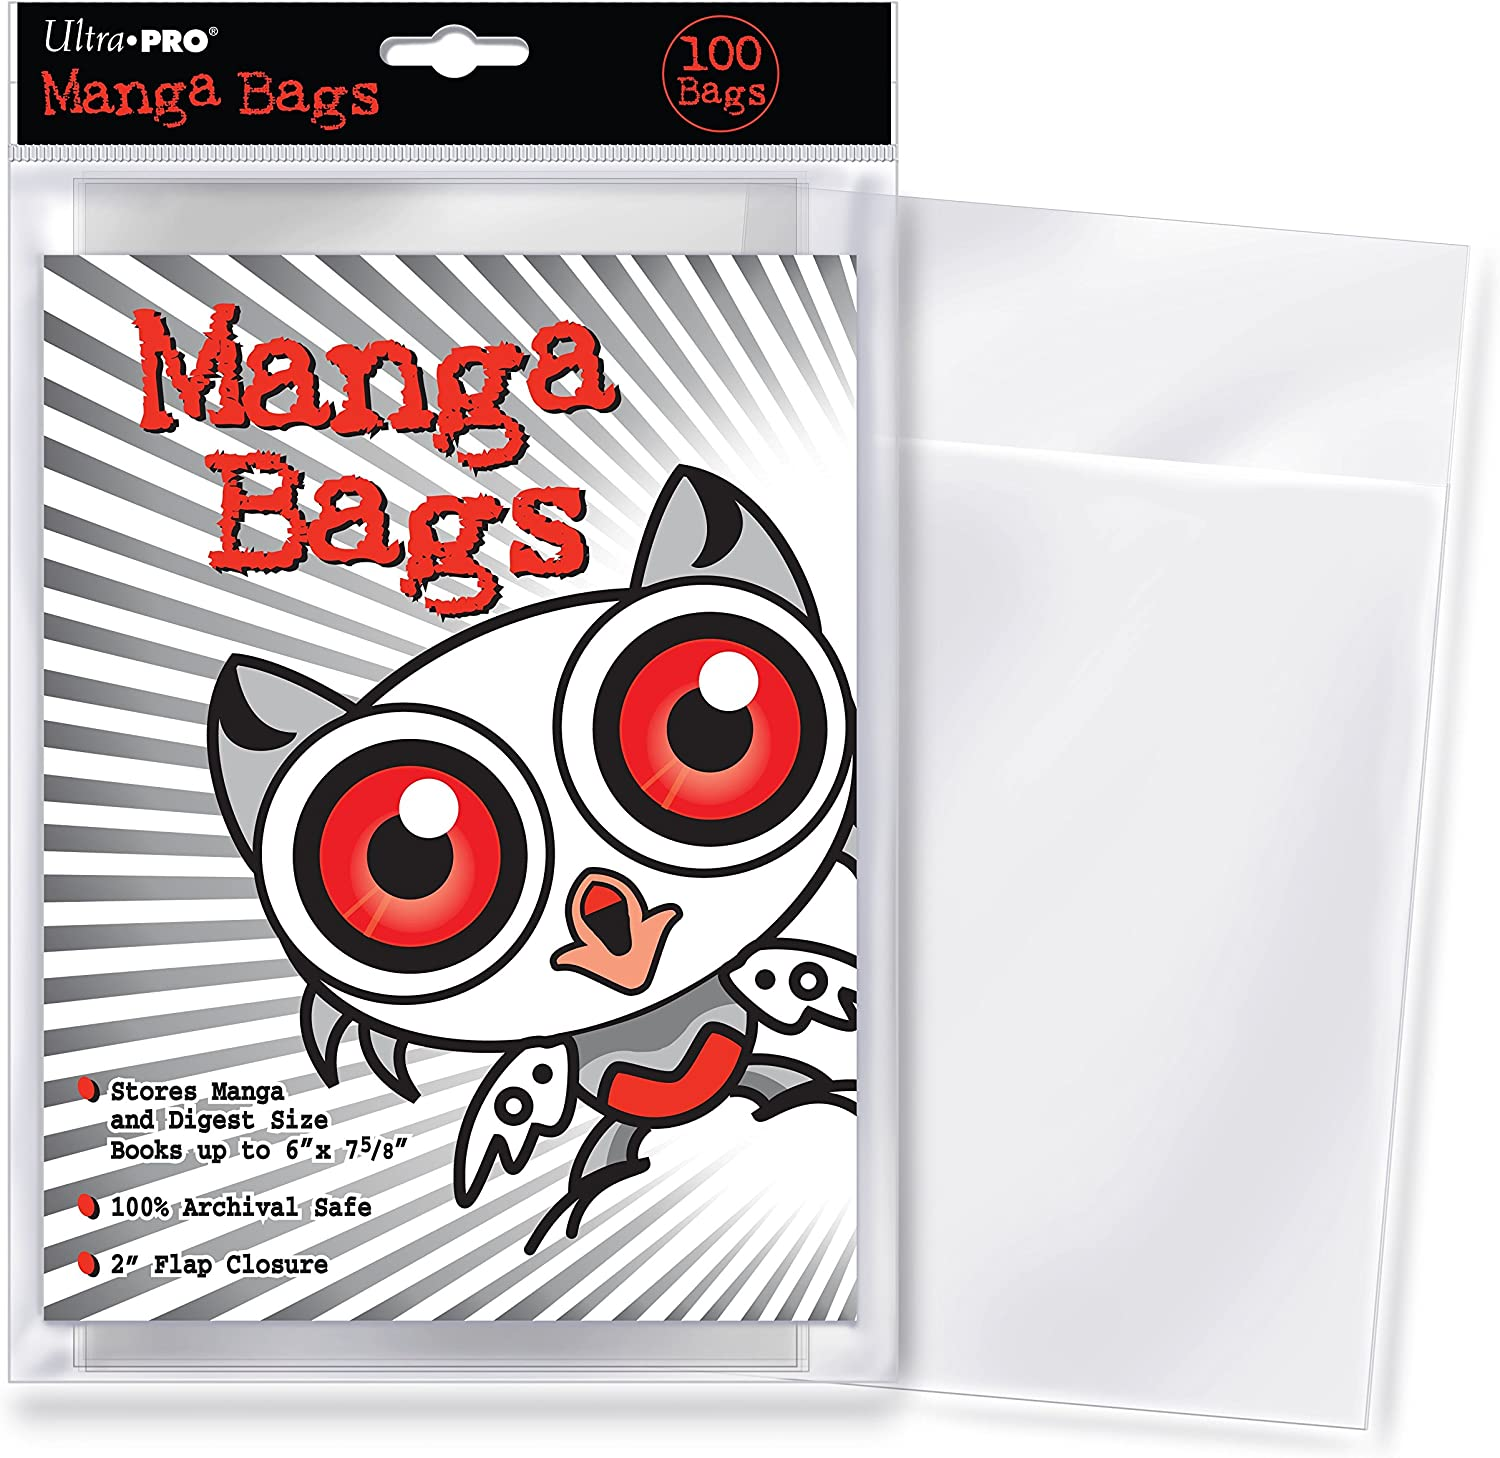 Ultra PRO Manga Size 6 x 7-5//8 Comic Bags Small Clear 100 Count Pack